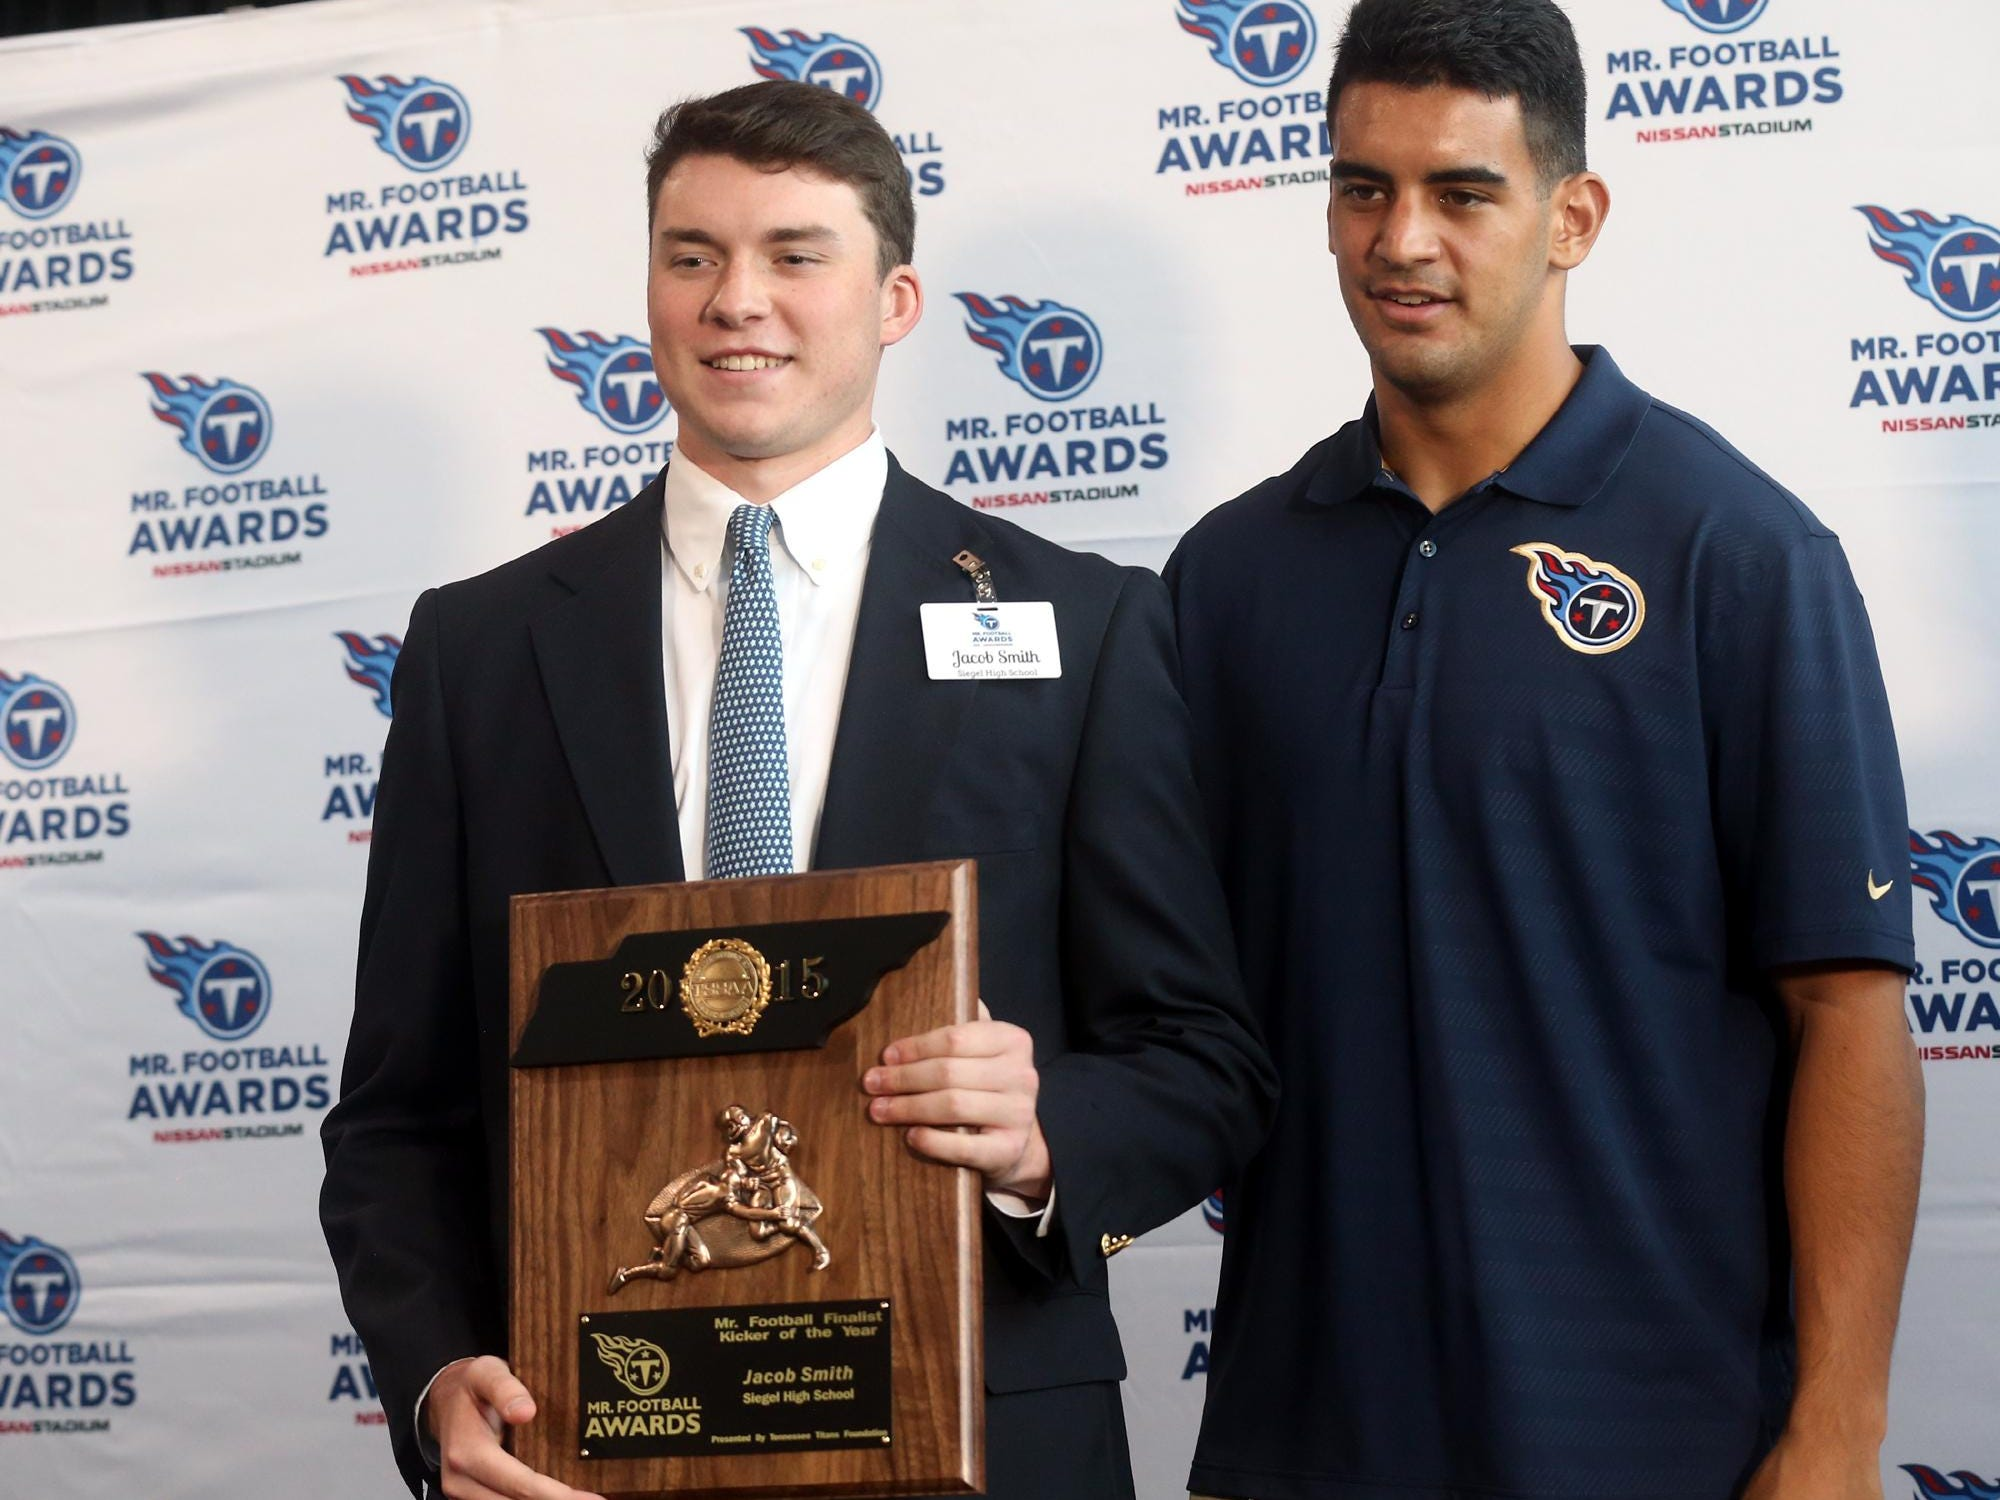 Jacob Smith, left, of Siegel High School holds his runner-up award for Kicker of the Year after receiving the award from Tennessee Titans quarterback Marcus Mariota on Monday at the 2015 Mr. Football awards at Nissan Stadium in Nashville.